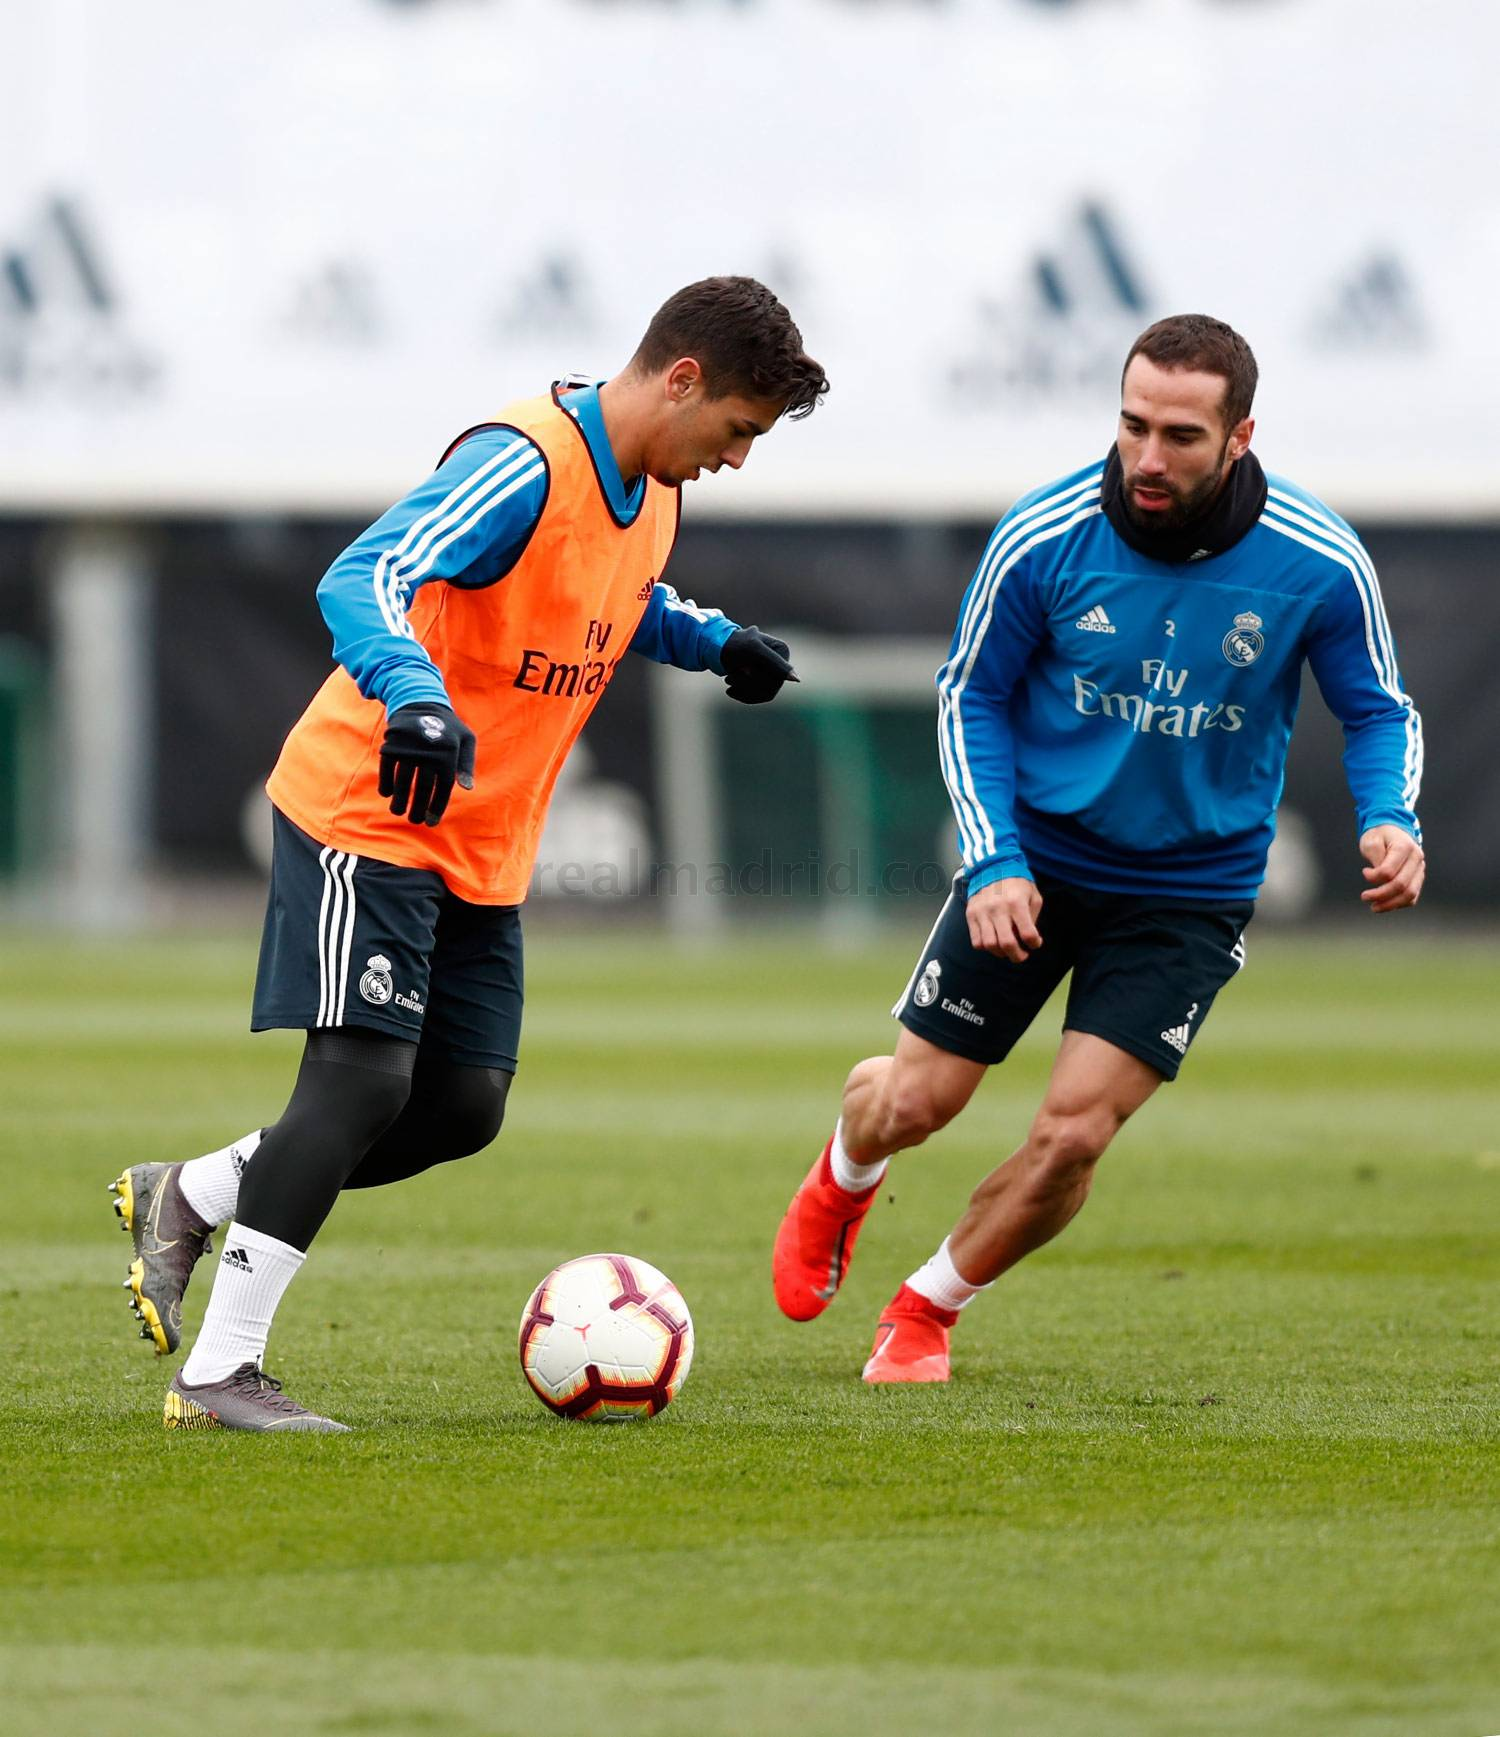 Real Madrid - Entrenamiento del Real Madrid - 23-04-2019